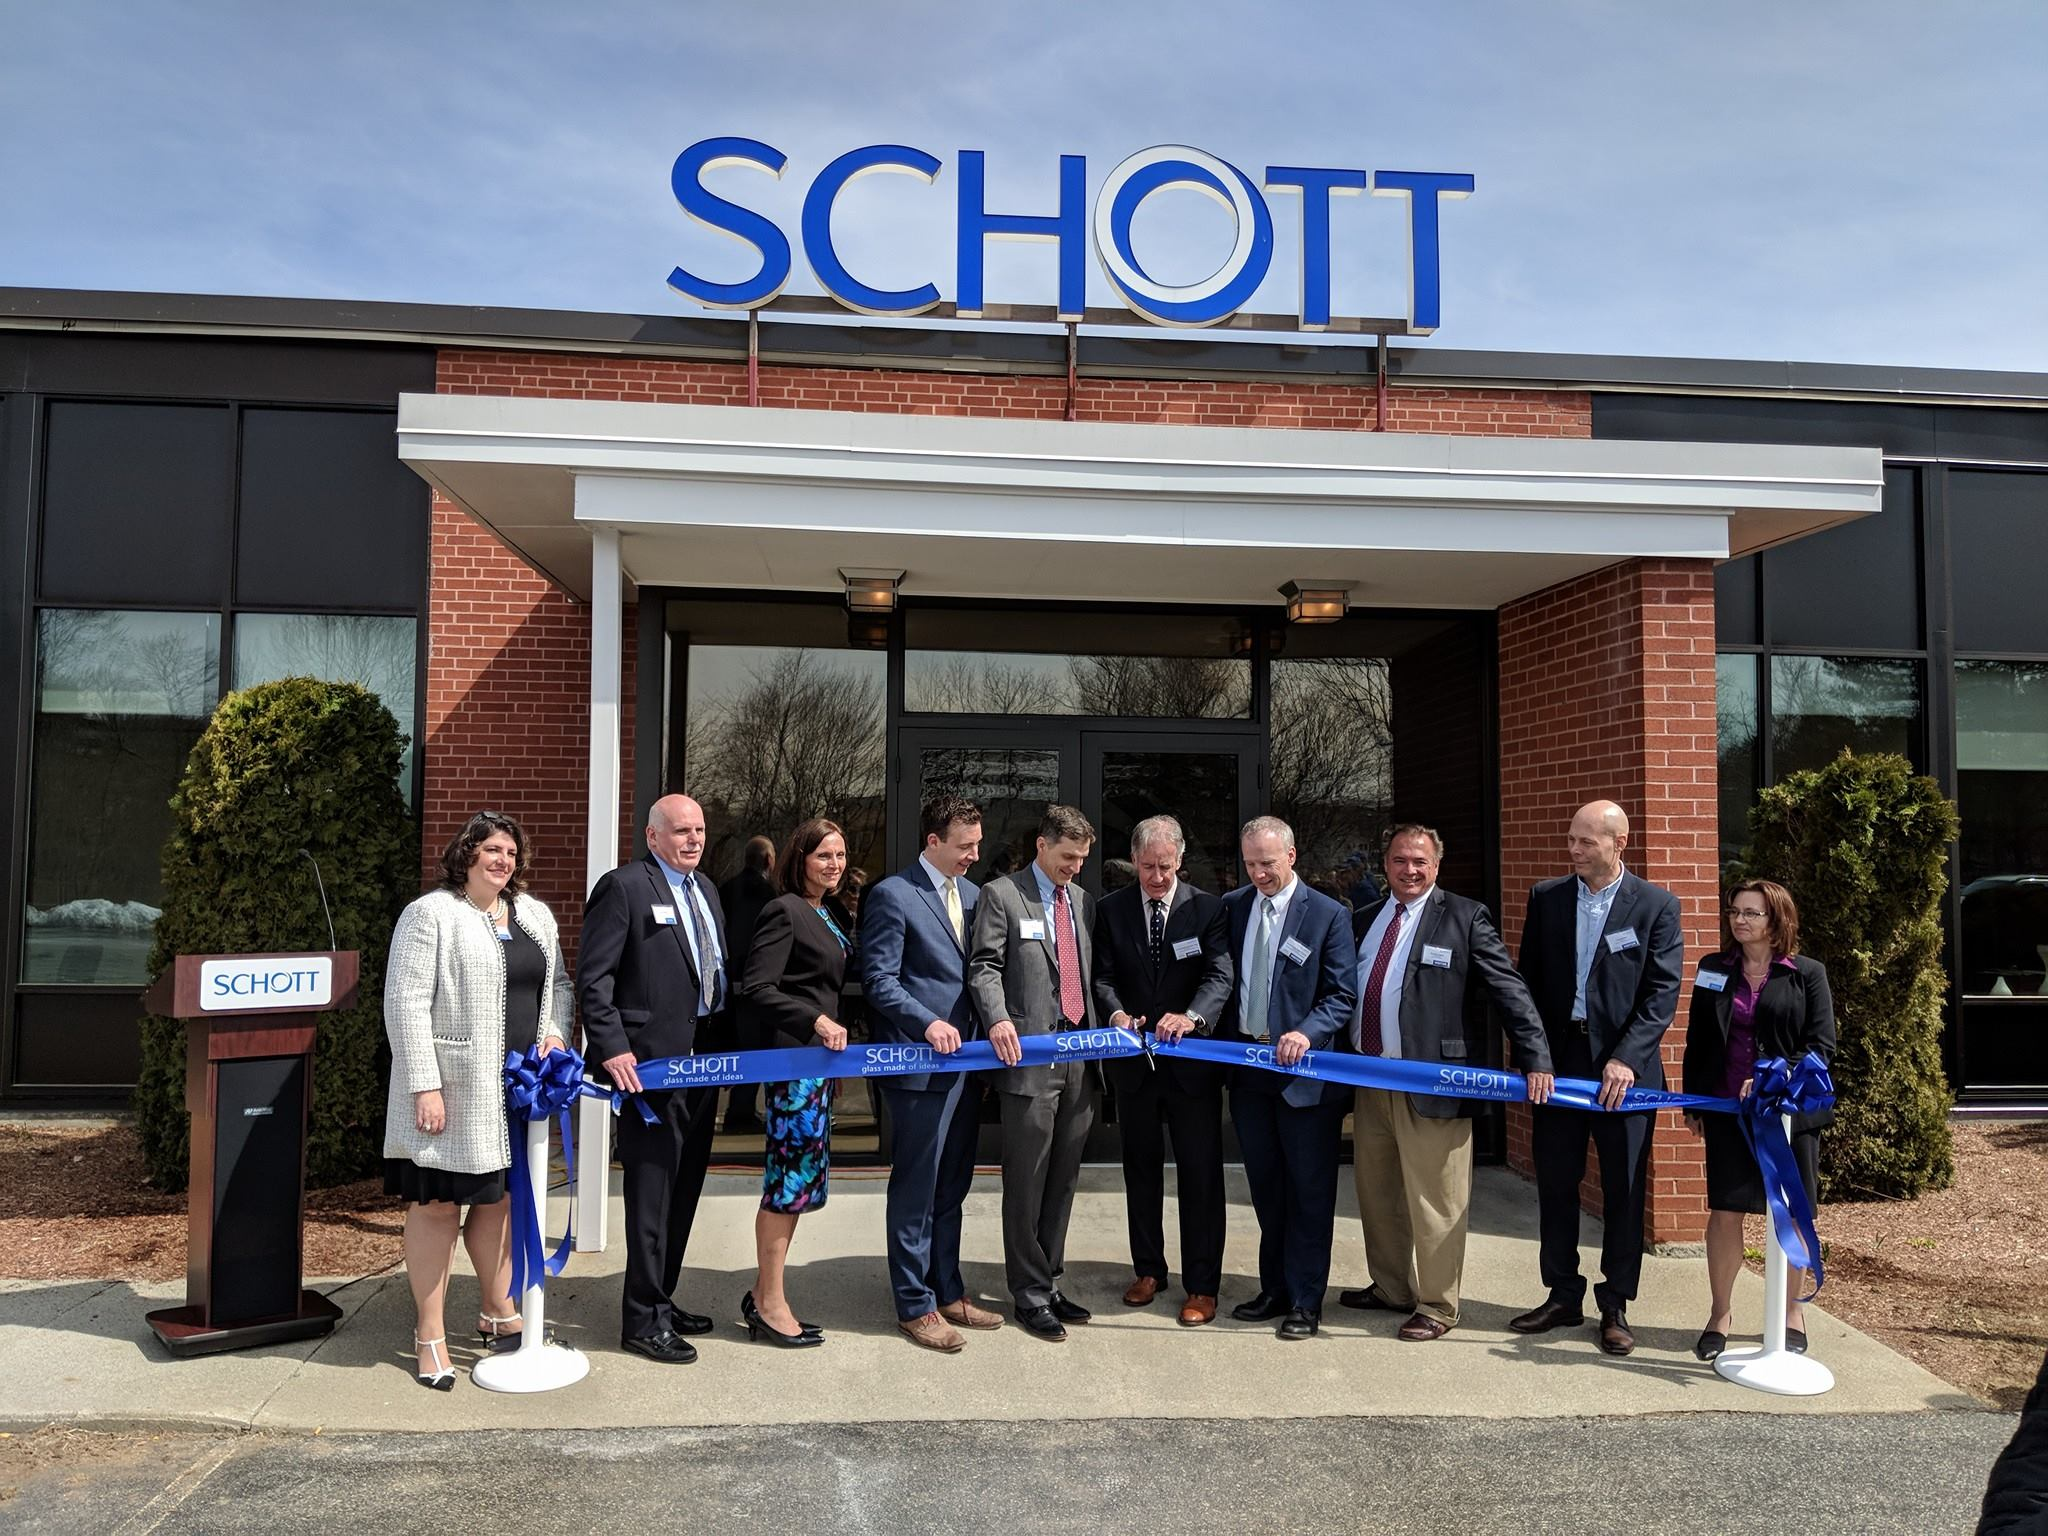 SCHOTT announces continued investment in Southbridge Lighting and Imaging facility